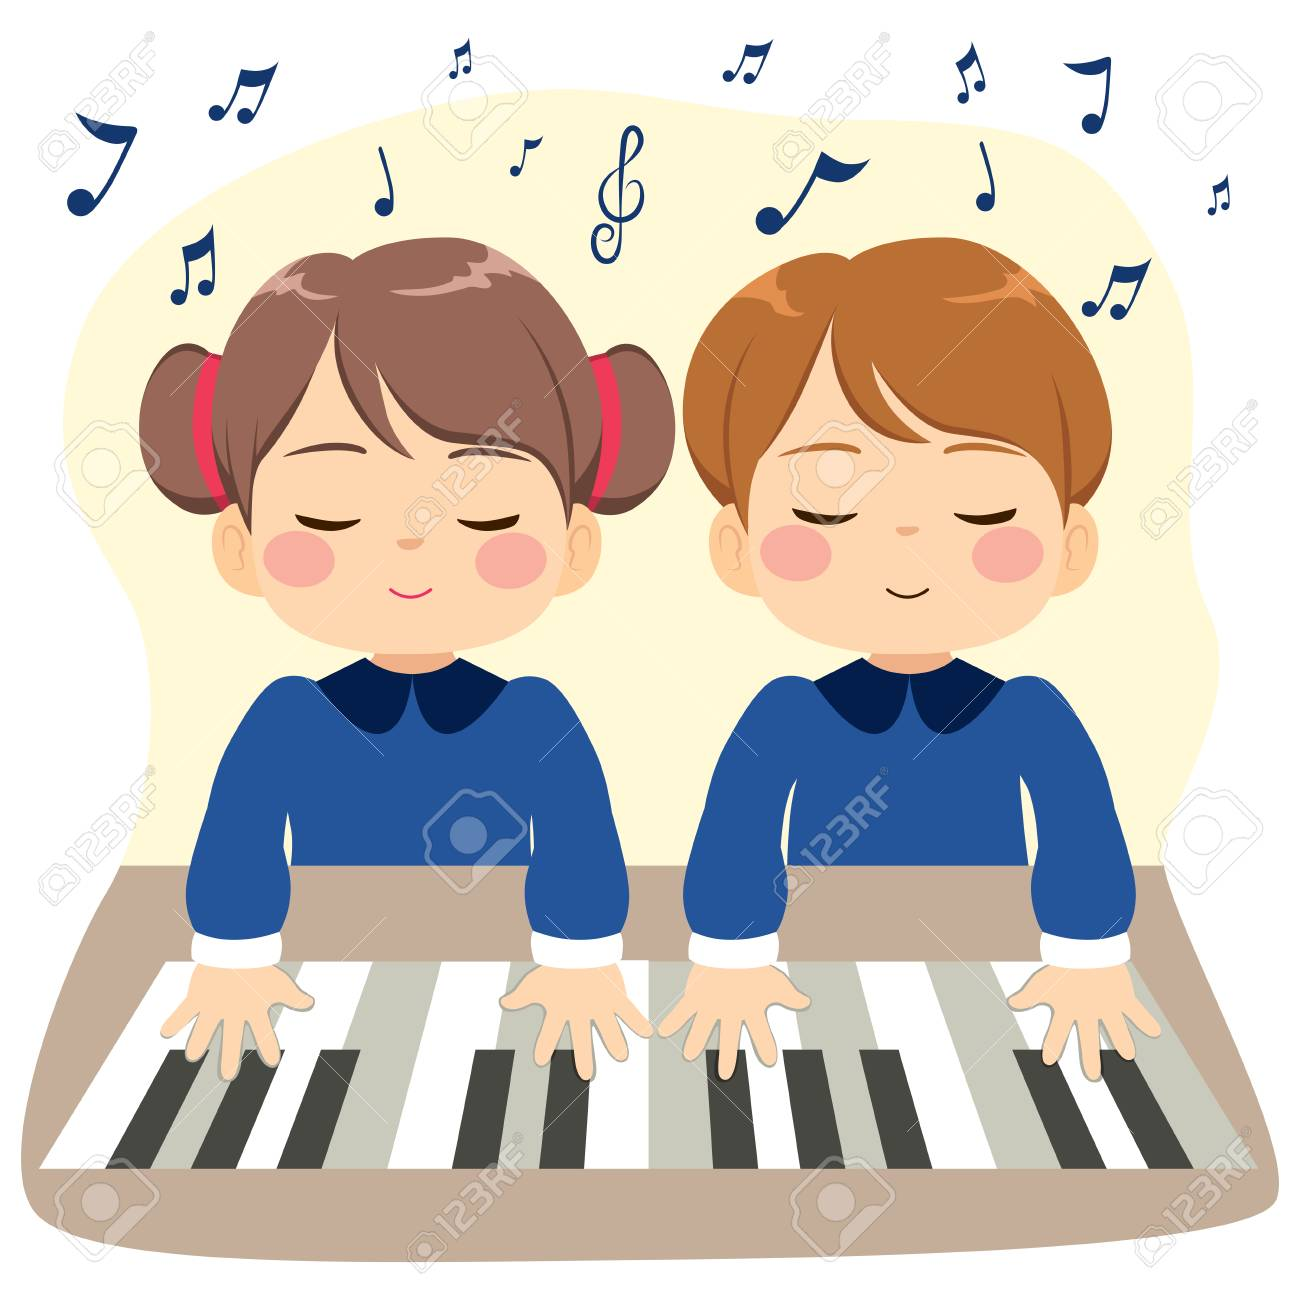 Sweet little children playing piano together with music notes.